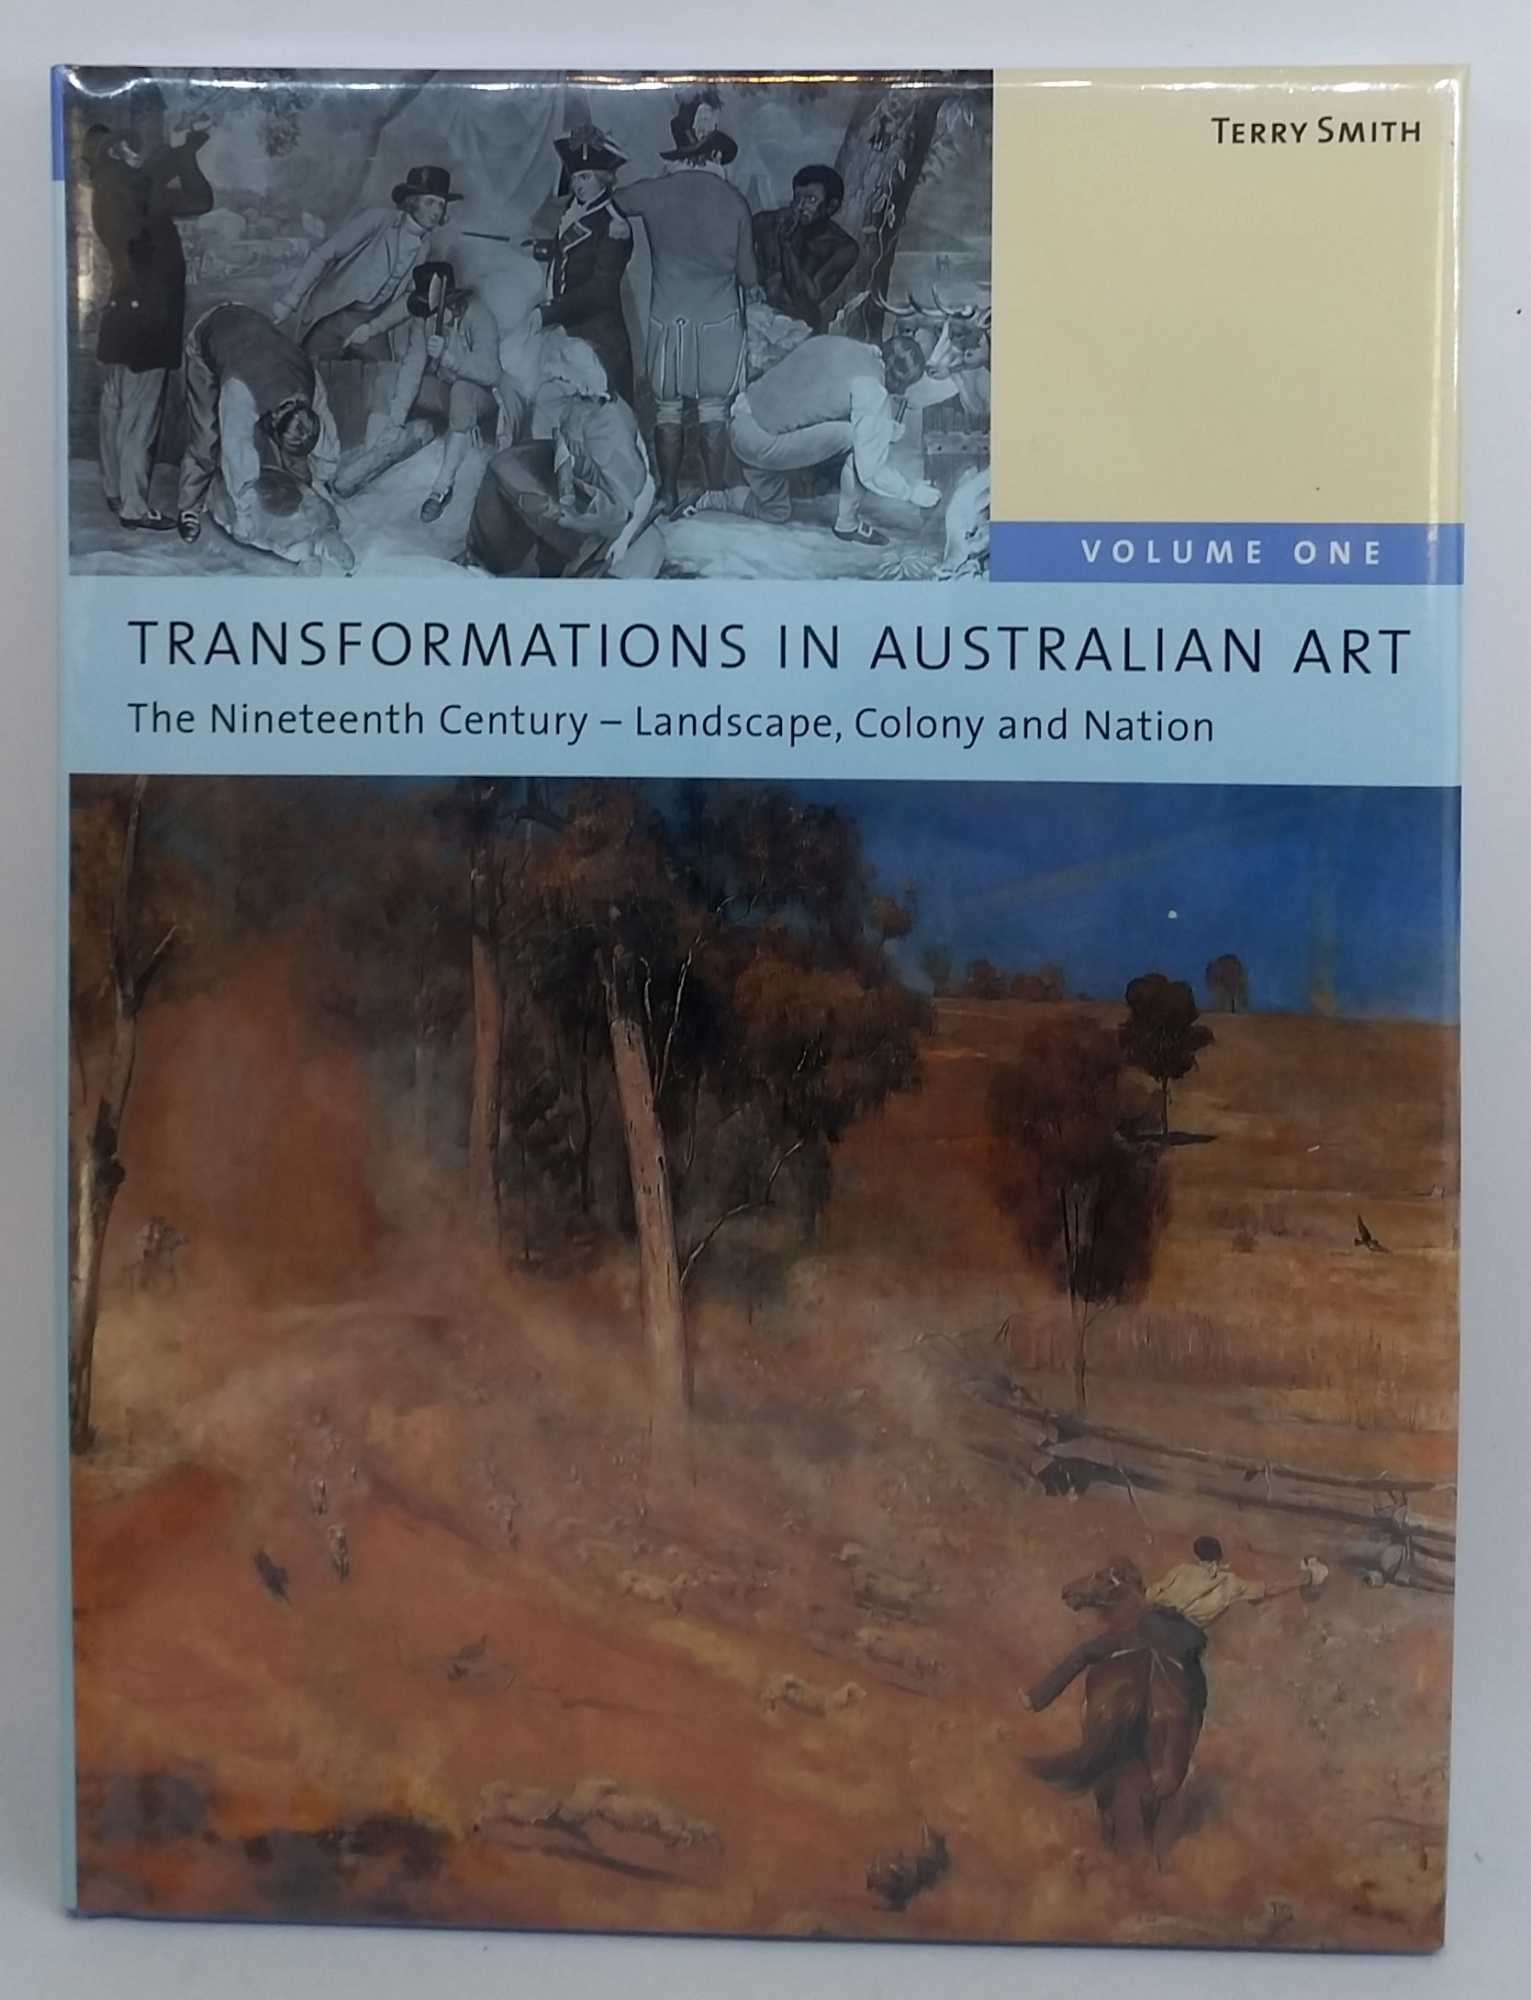 TERRY SMITH - Transformations In Australian Art Volume One: The Nineteenth Century - Landscape, Colony and Nation